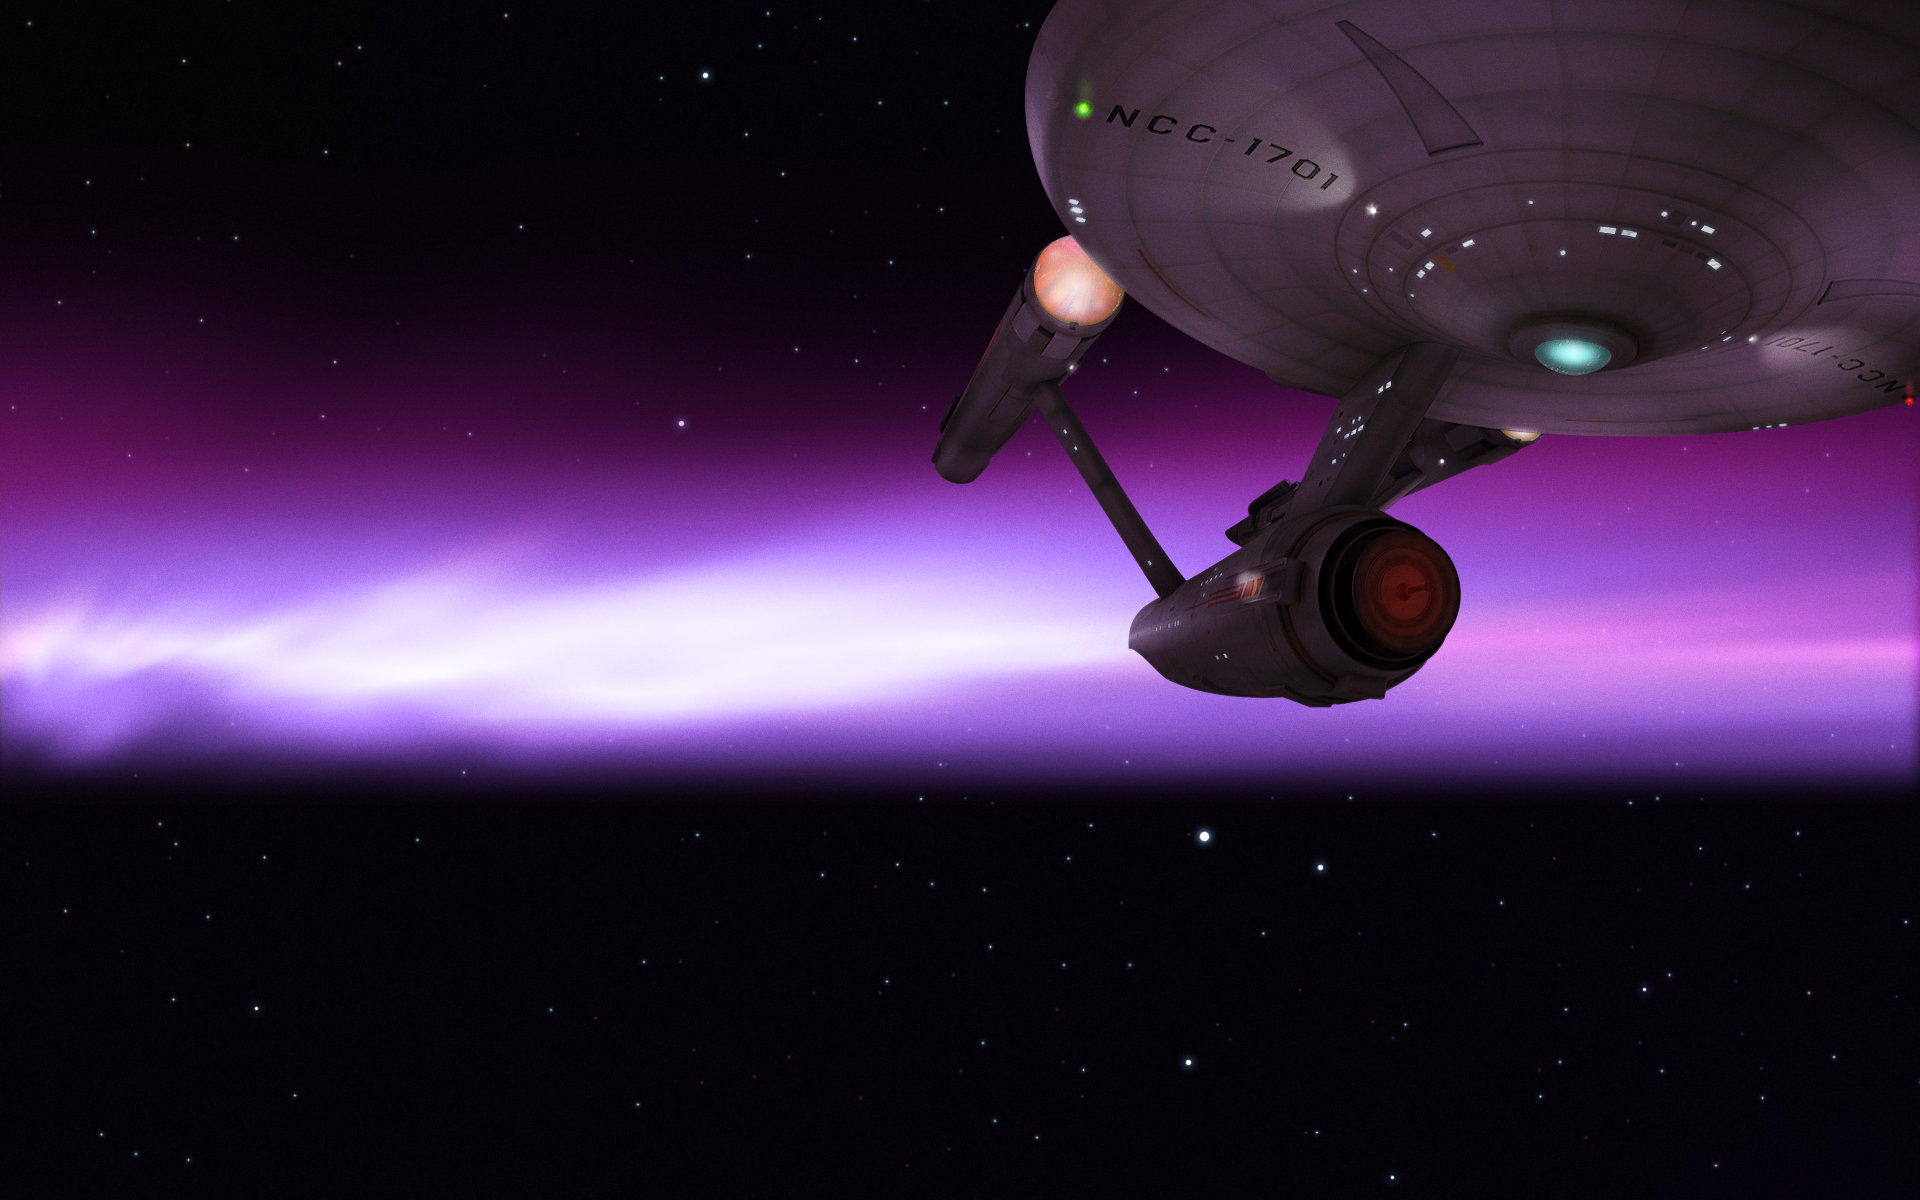 Free Star Trek: The Original Series high quality wallpaper ID:198024 for hd 1920x1200 desktop